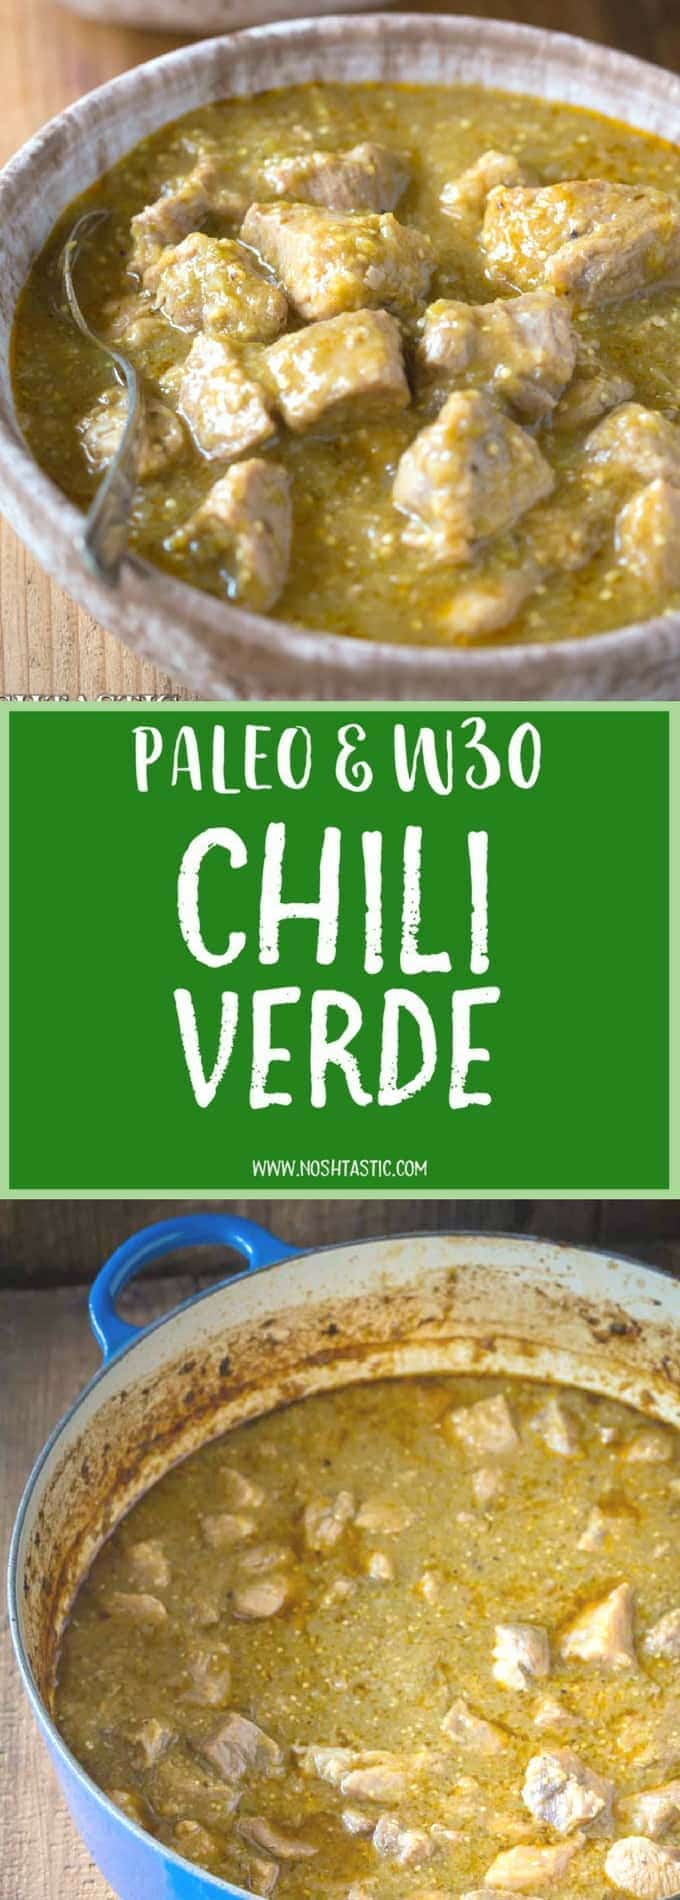 Easy and healthy , gluten free, whole30, Paleo Chili Verde recipe with roasted tomatillos, garlic, onion, and tender pieces of pork that melt in your mouth and it's low carb too!